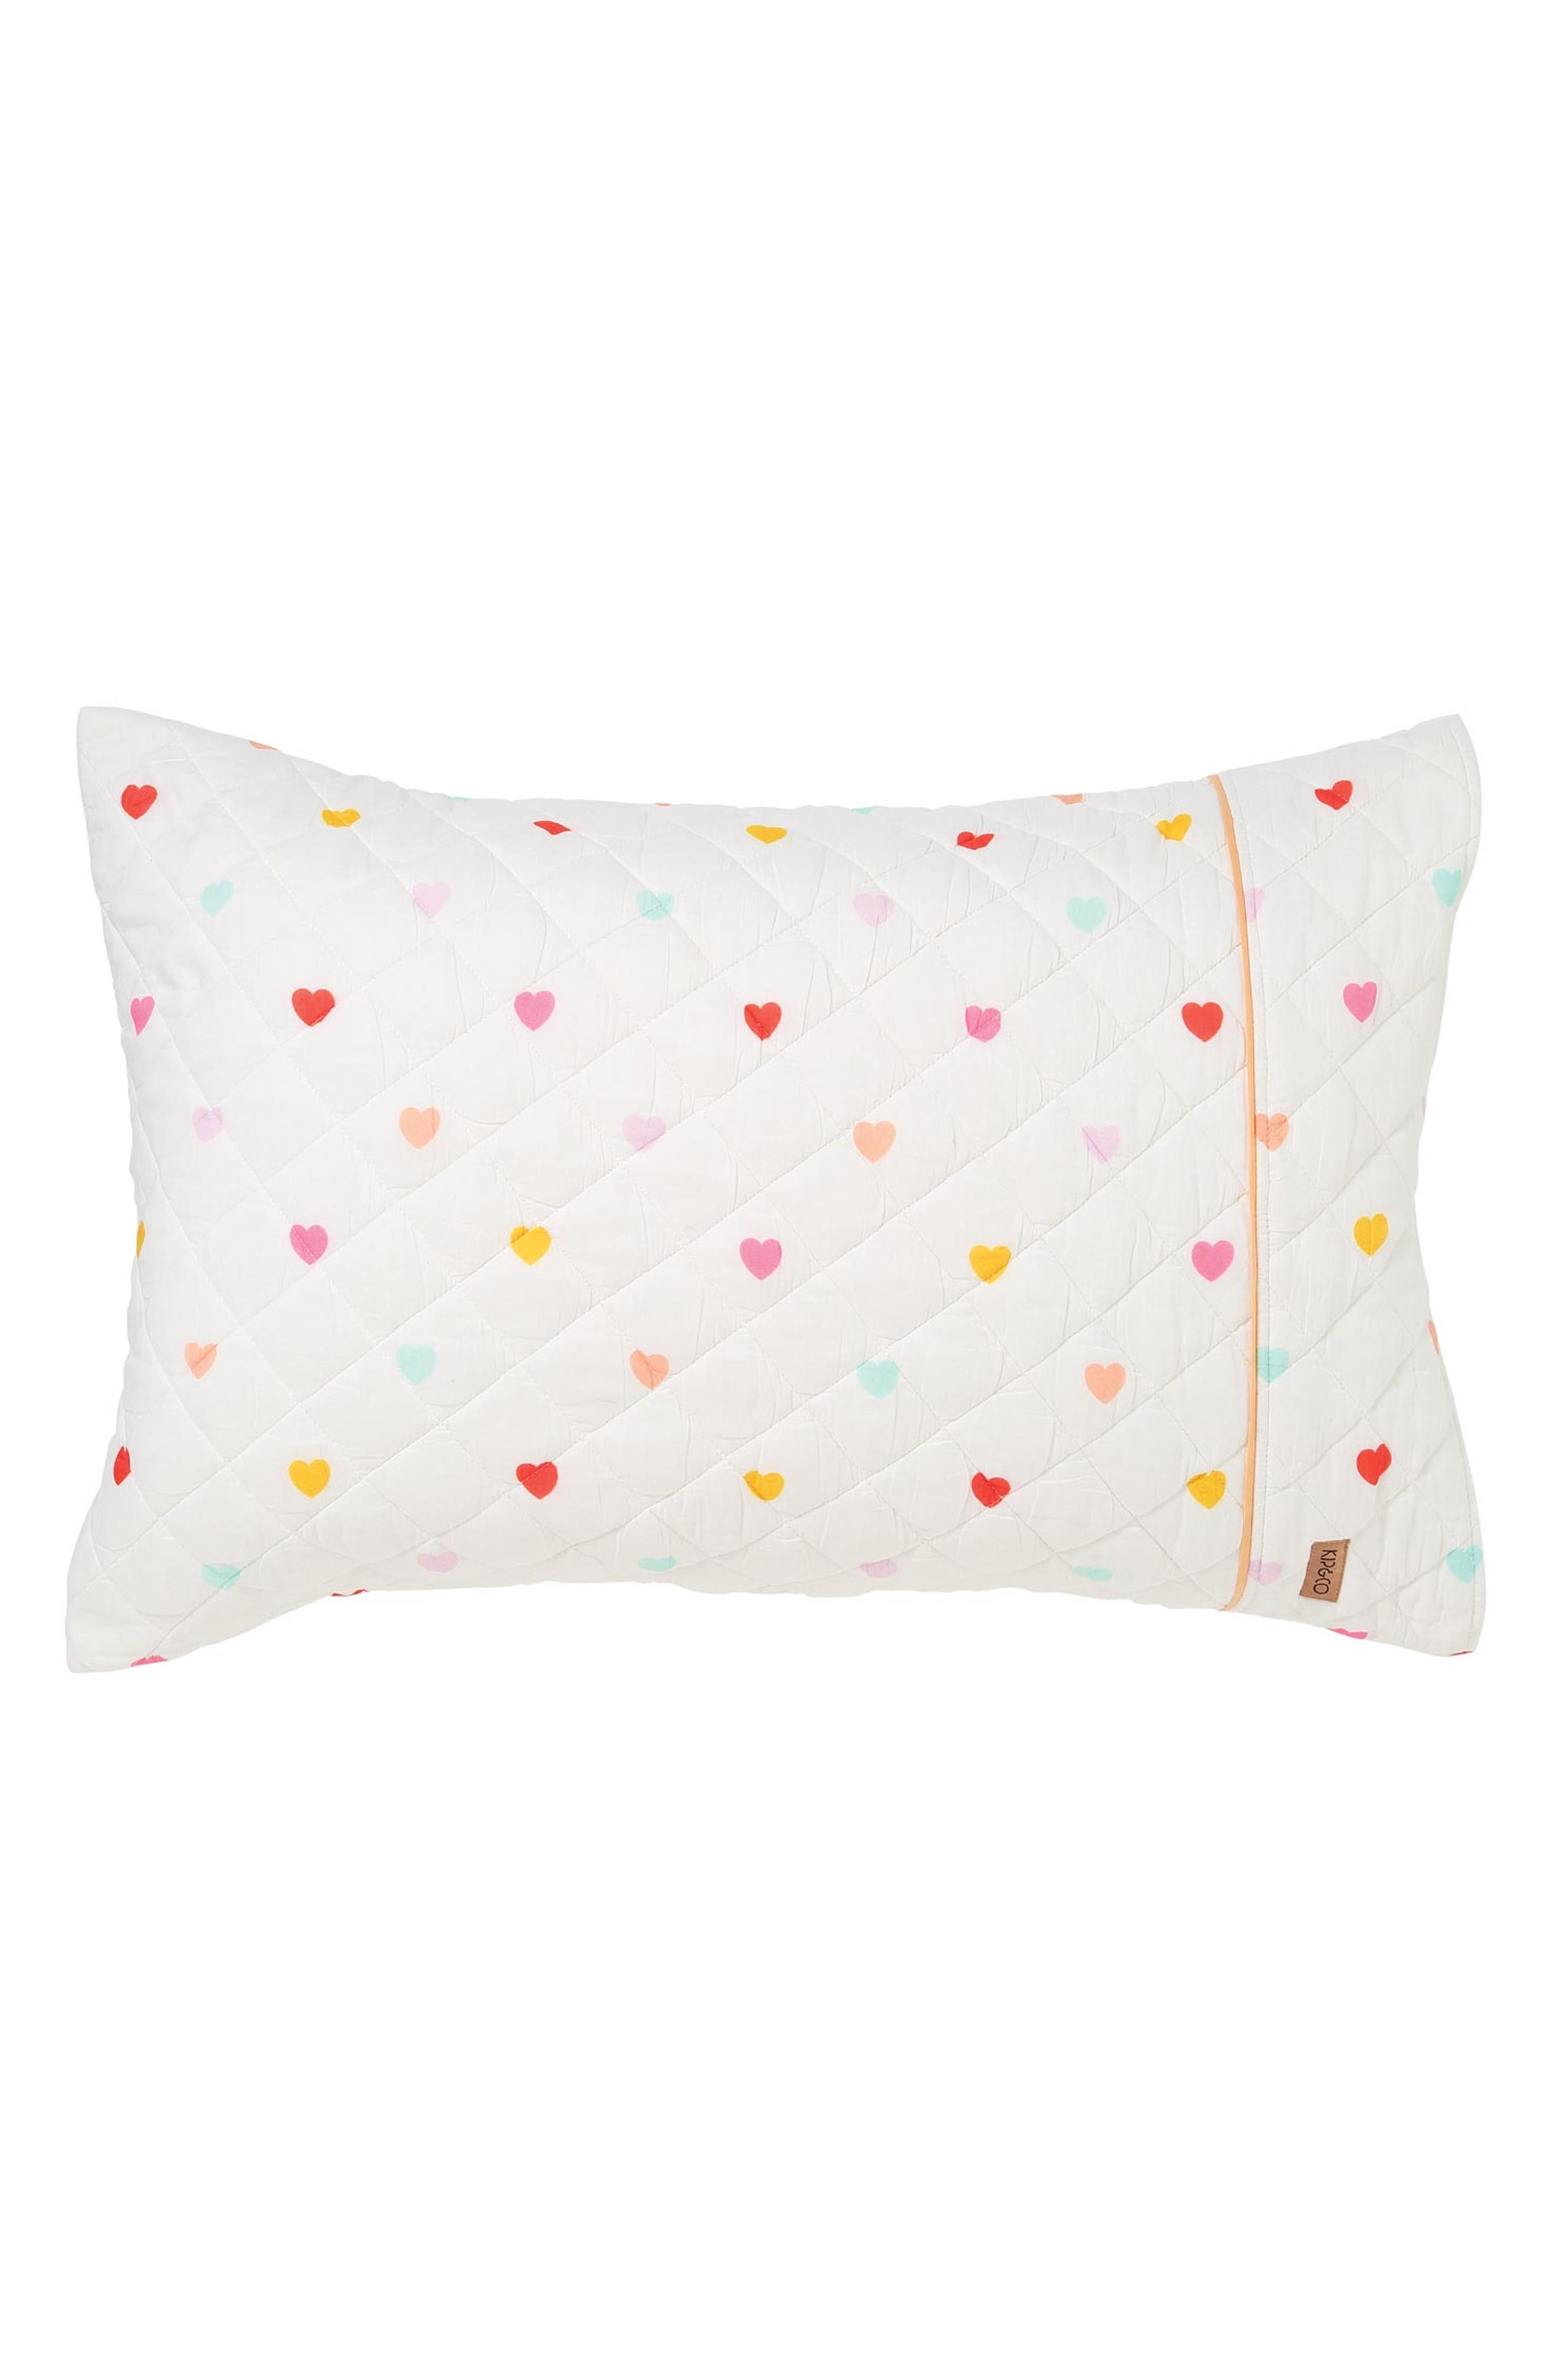 I Heart You Quilted Cotton Pillowcase,                             Main thumbnail 1, color,                             MULTI